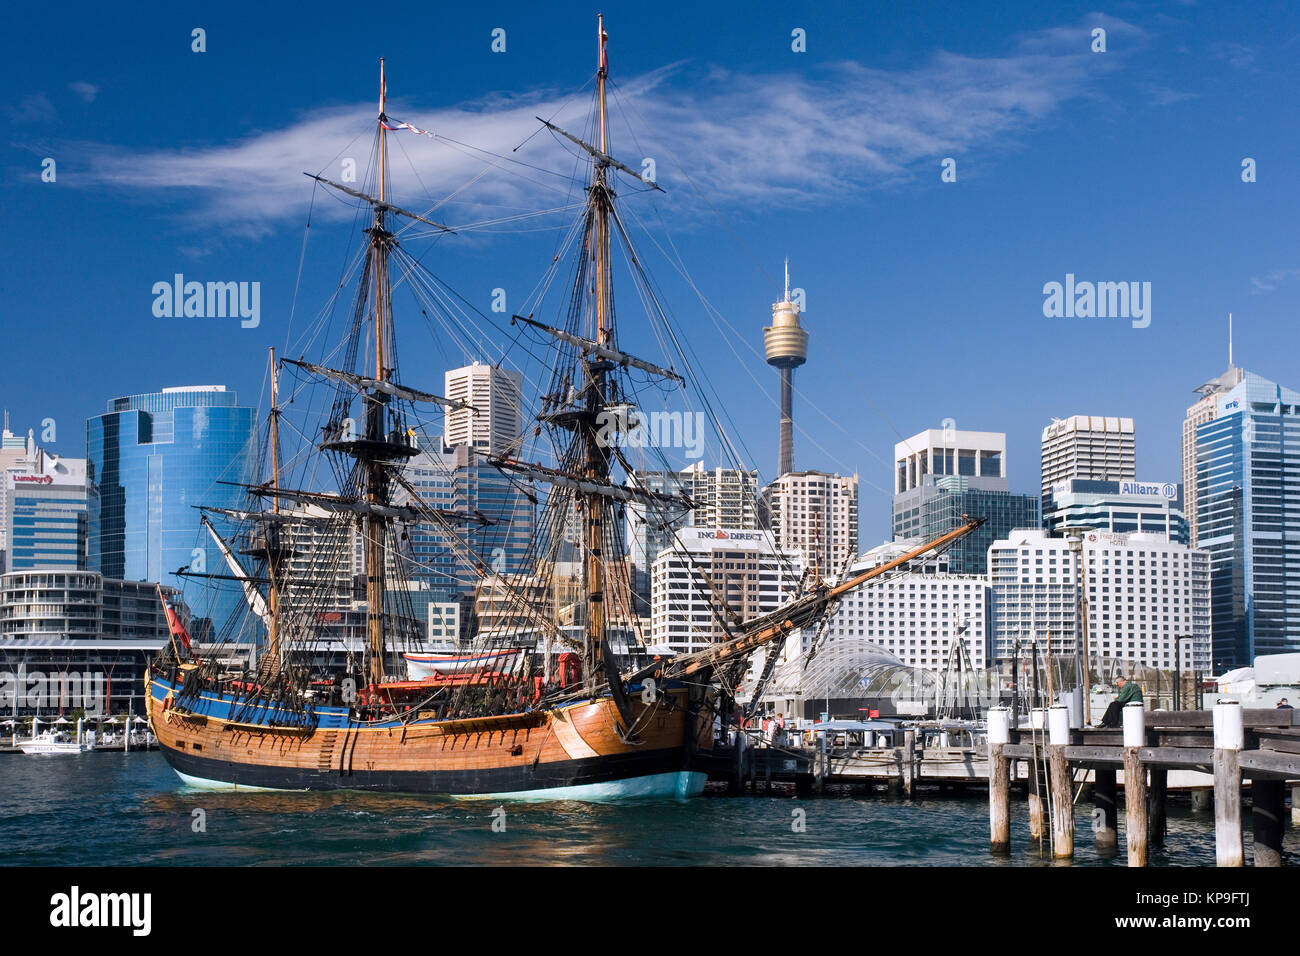 Replica sailing ship 'Endurance' in Darling Harbor in the city of Sydney, New South Wales, Australia. - Stock Image